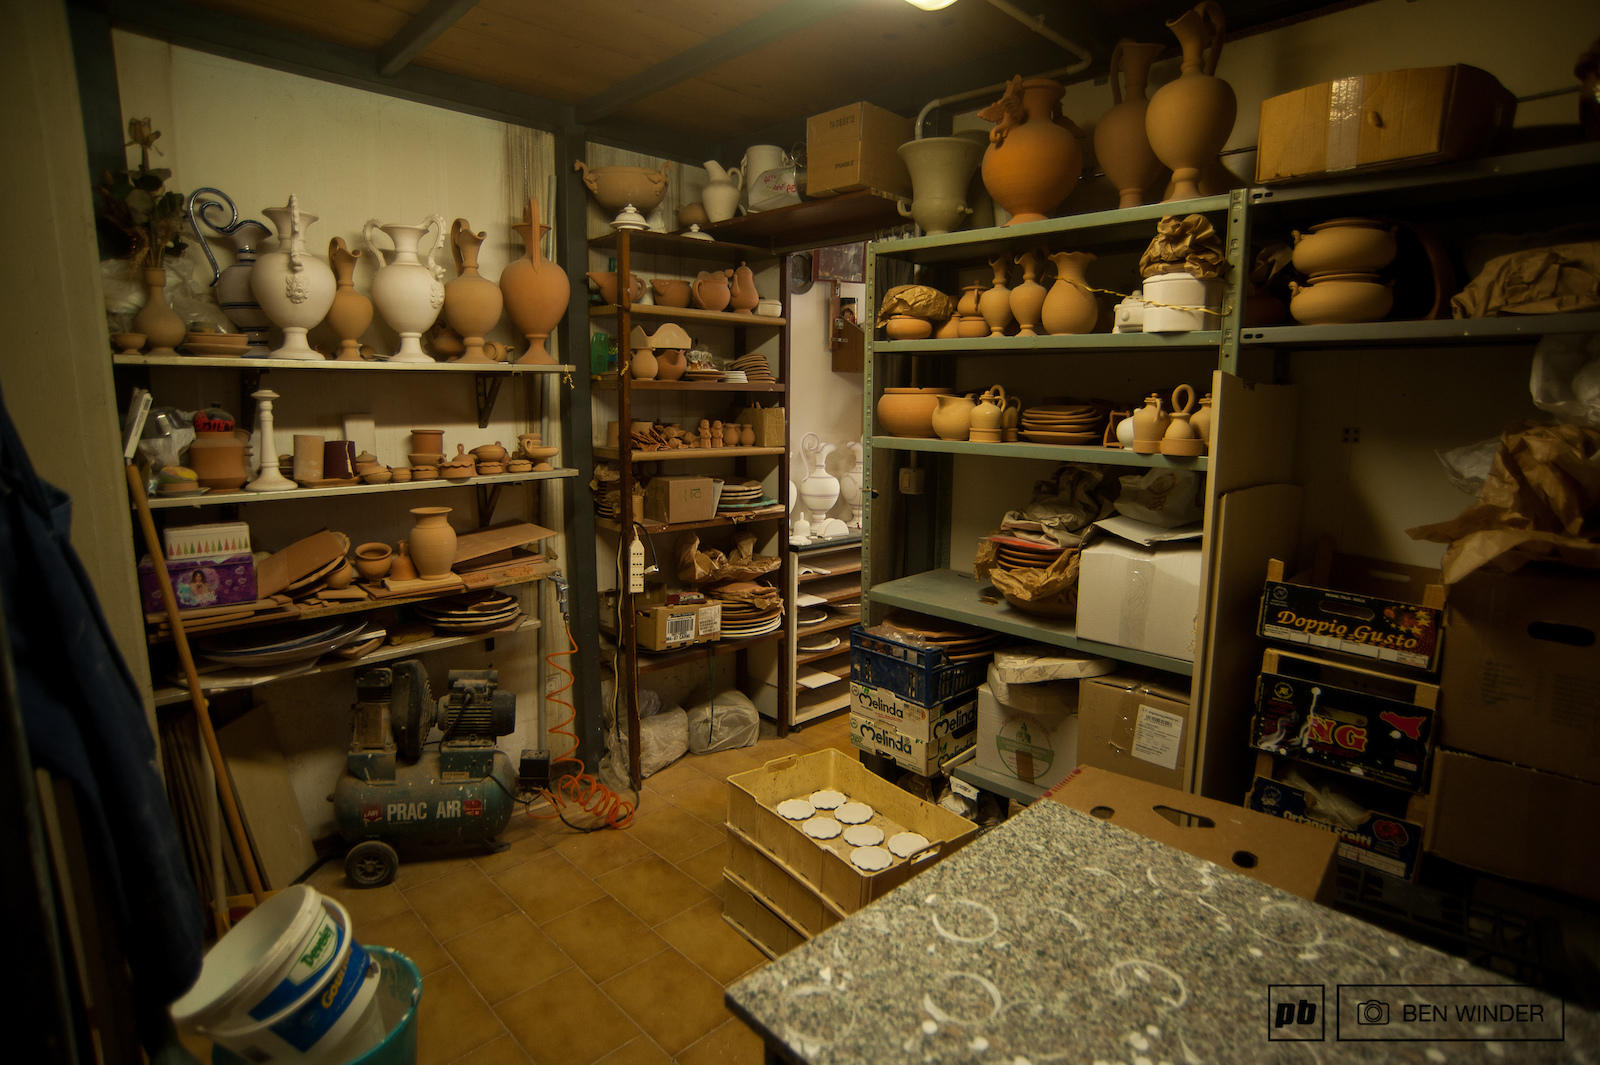 A view of one of the rooms in his workshop.